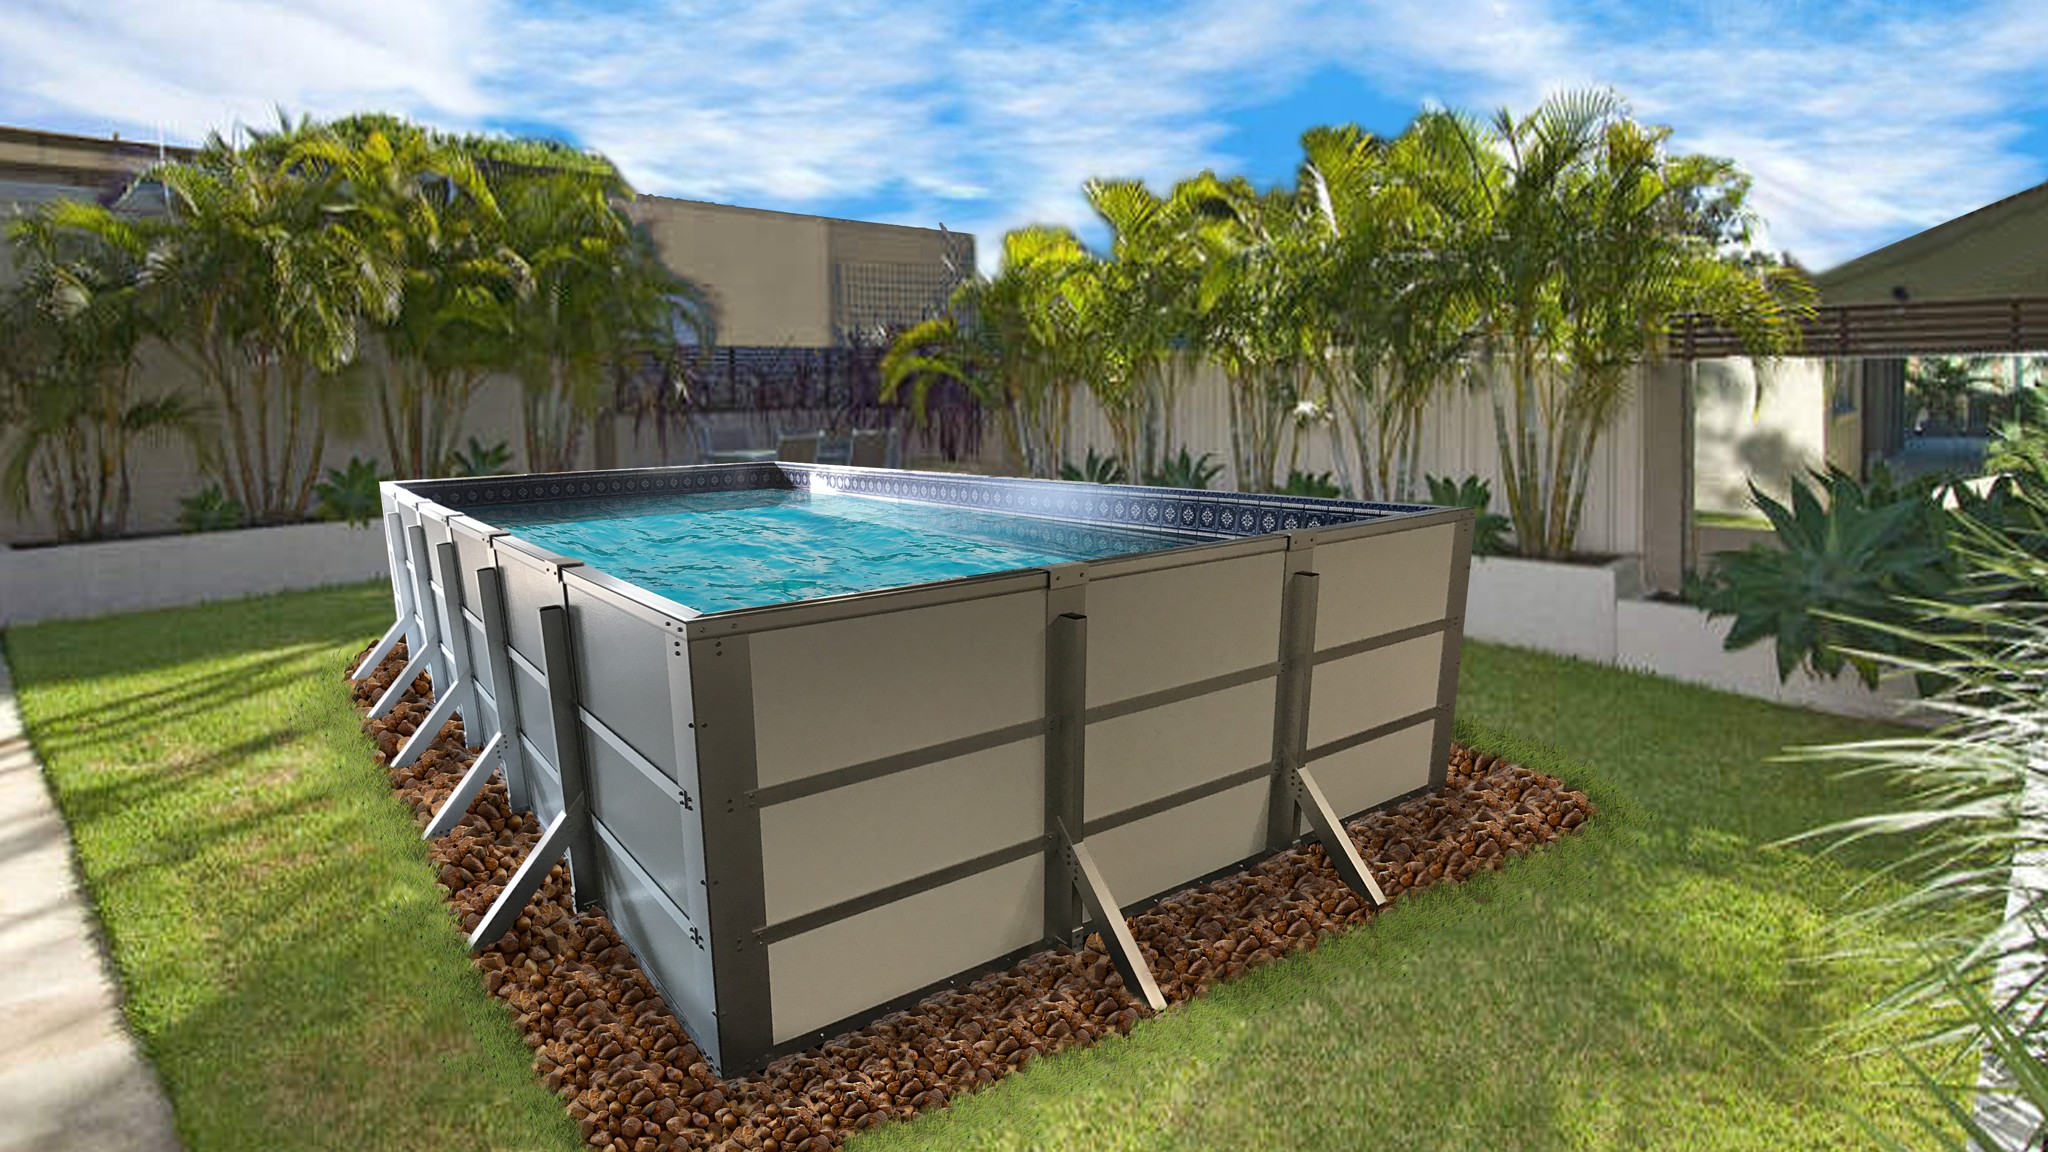 HERCULES MODULAR ABOVEGROUND RECTANGULAR POOL FOR 2019 | swimming ...